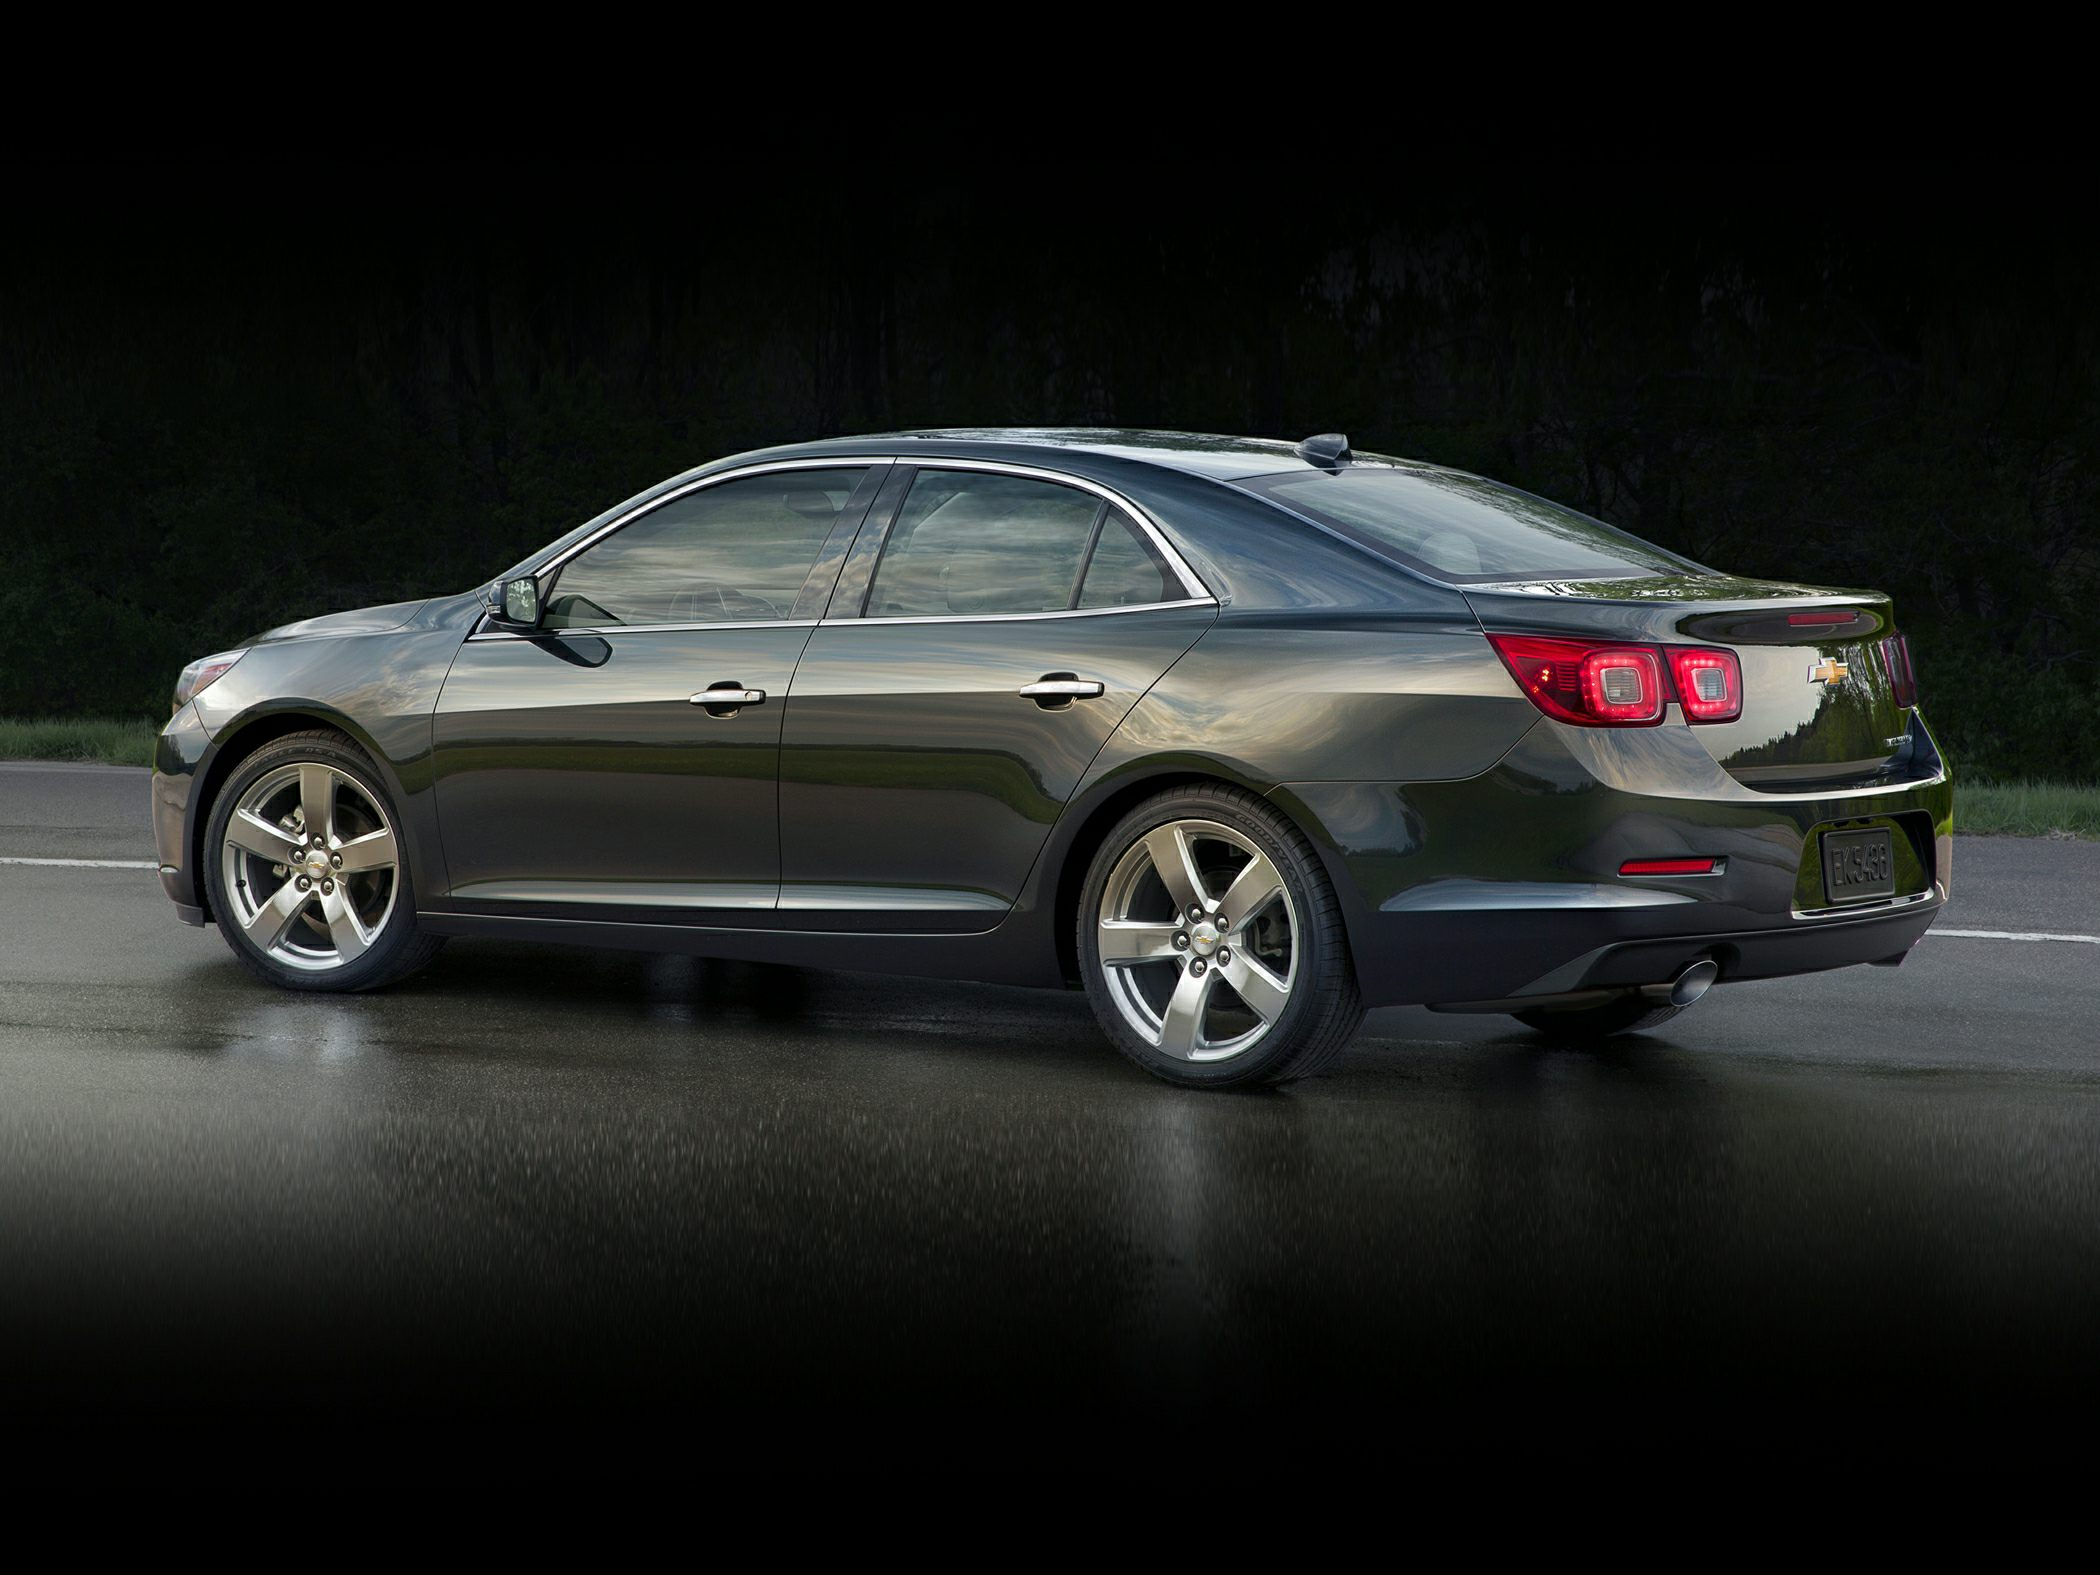 2016 chevrolet malibu limited styles features highlights. Black Bedroom Furniture Sets. Home Design Ideas